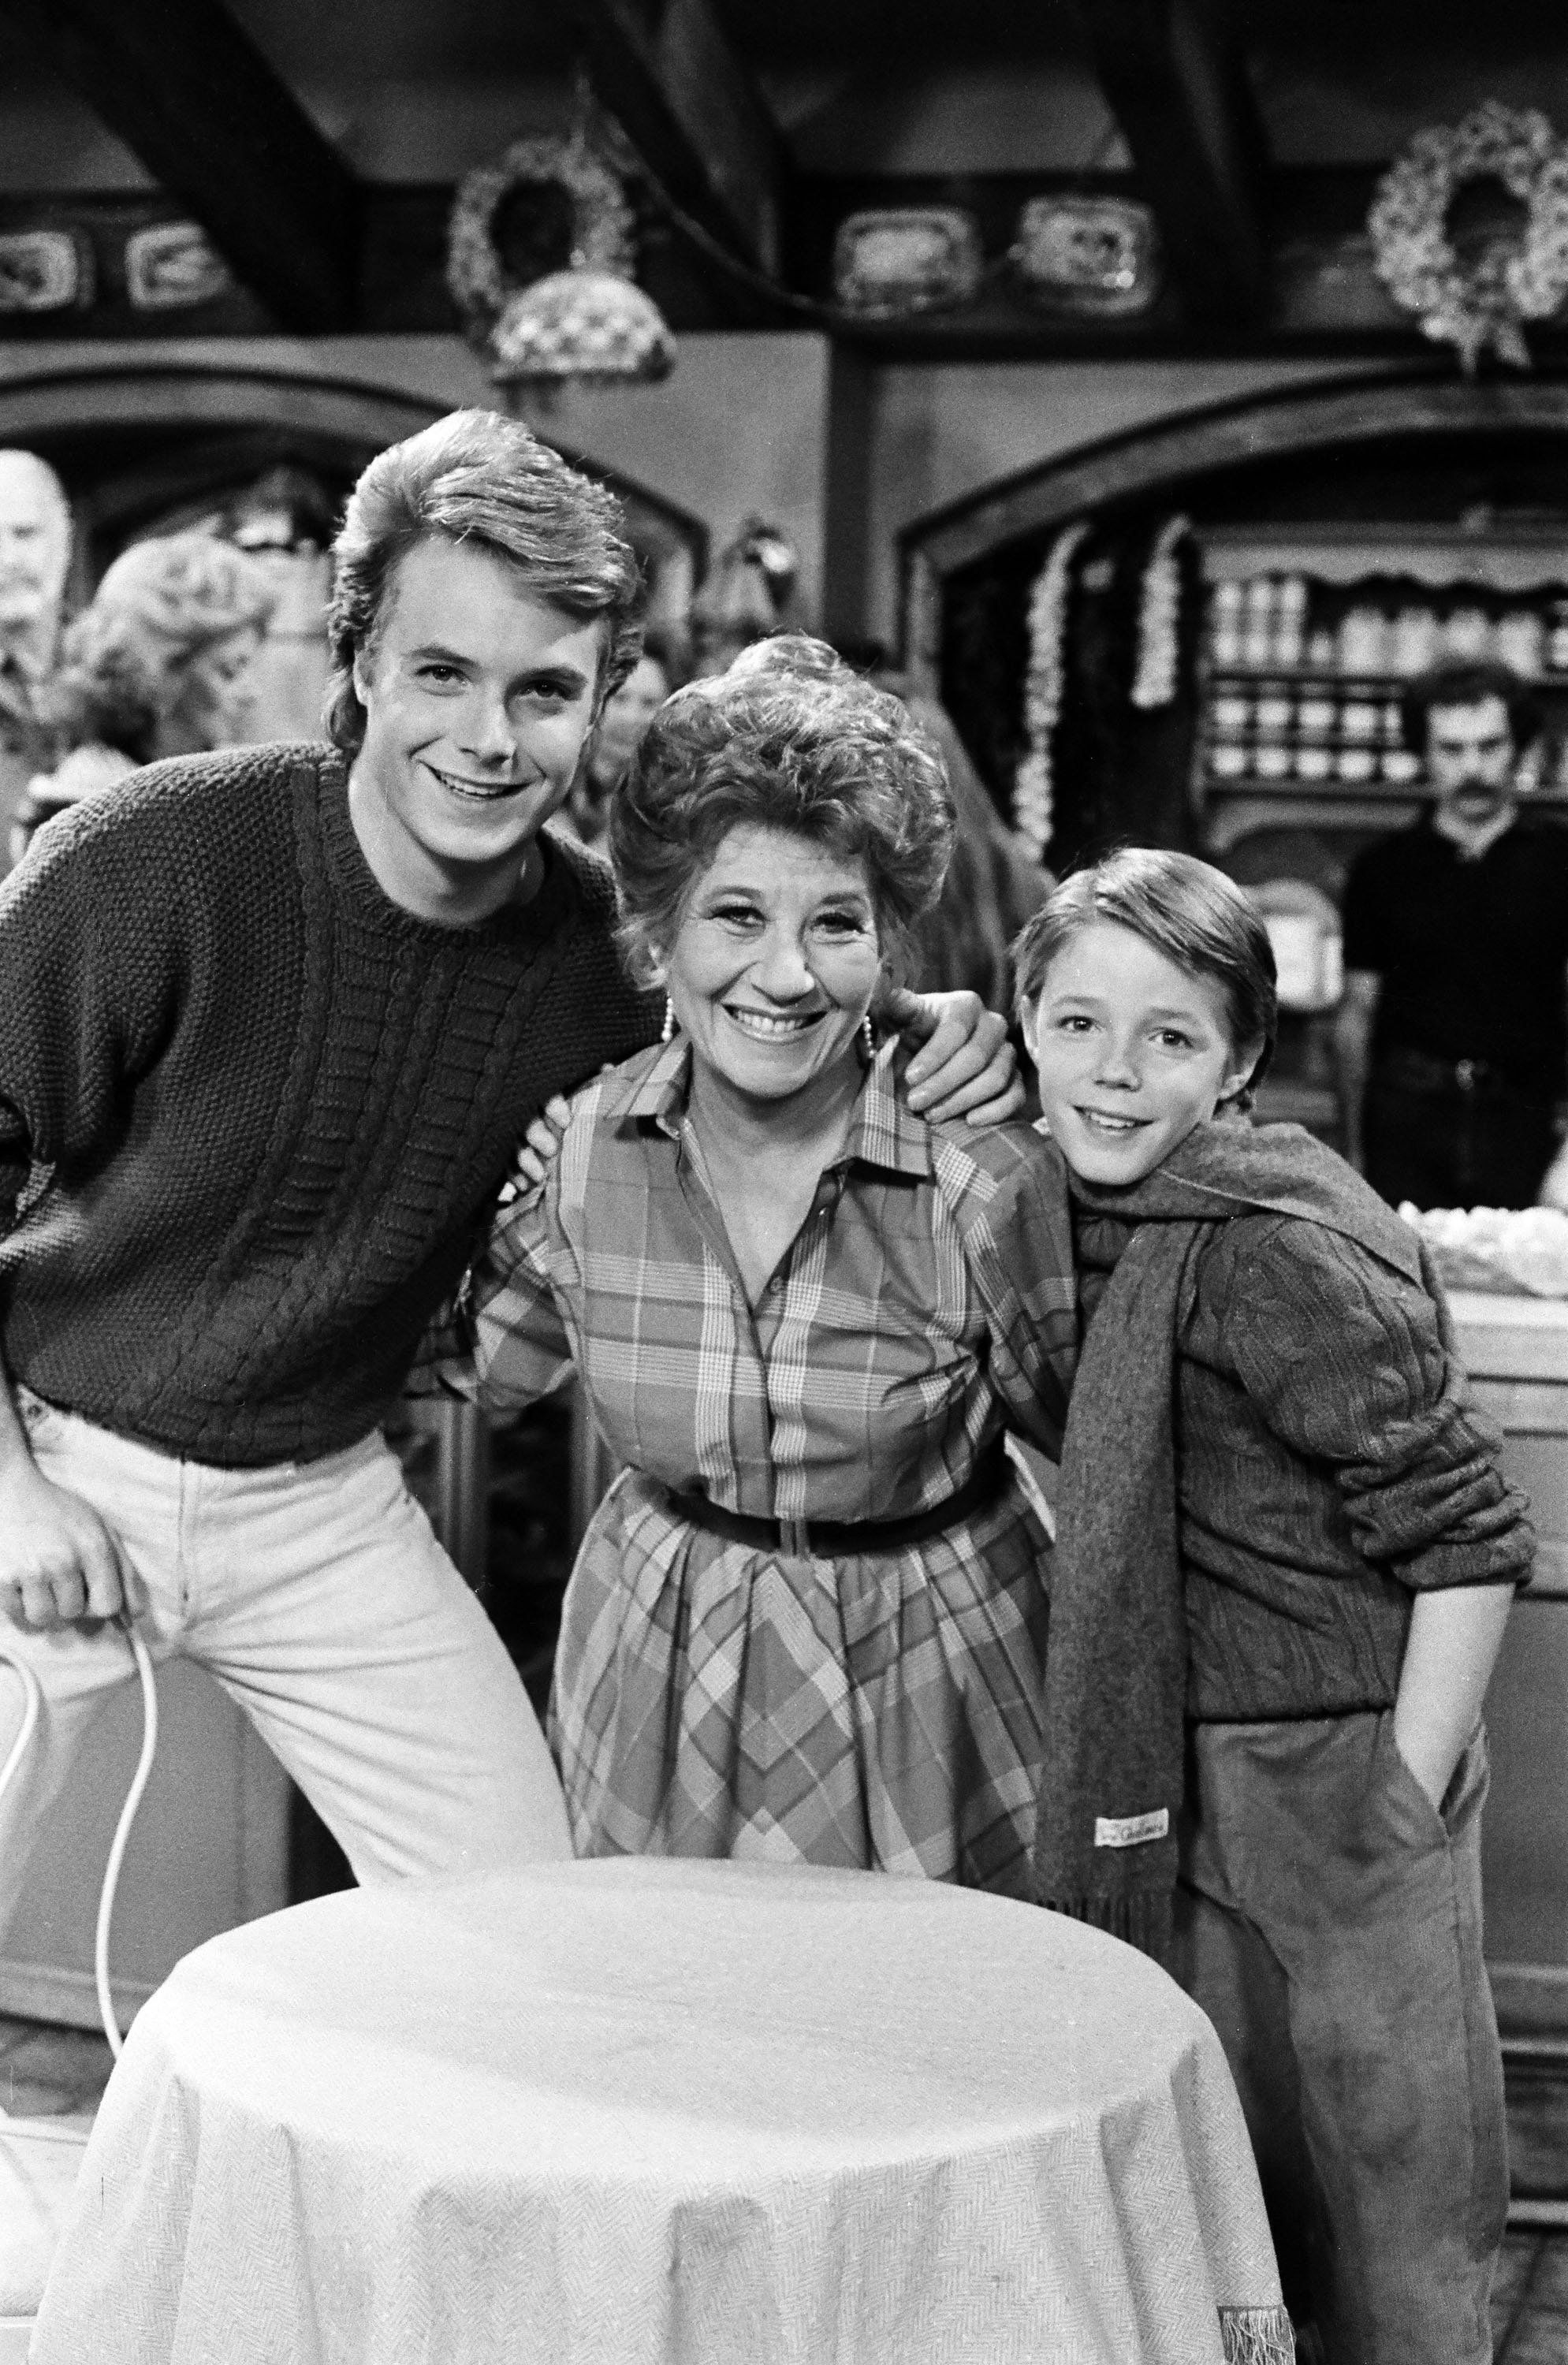 THE FACTS OF LIFE -- 'With a Little Help from My Friends' Episode 18 -- Pictured: (l-r) Ryan Cassidy as Kevin Metcalf, Charlotte Rae as Edna Garrett, Mackenzie Astin as Andy Moffet -- Photo by: Frank Carroll/NBC/NBCU Photo Bank